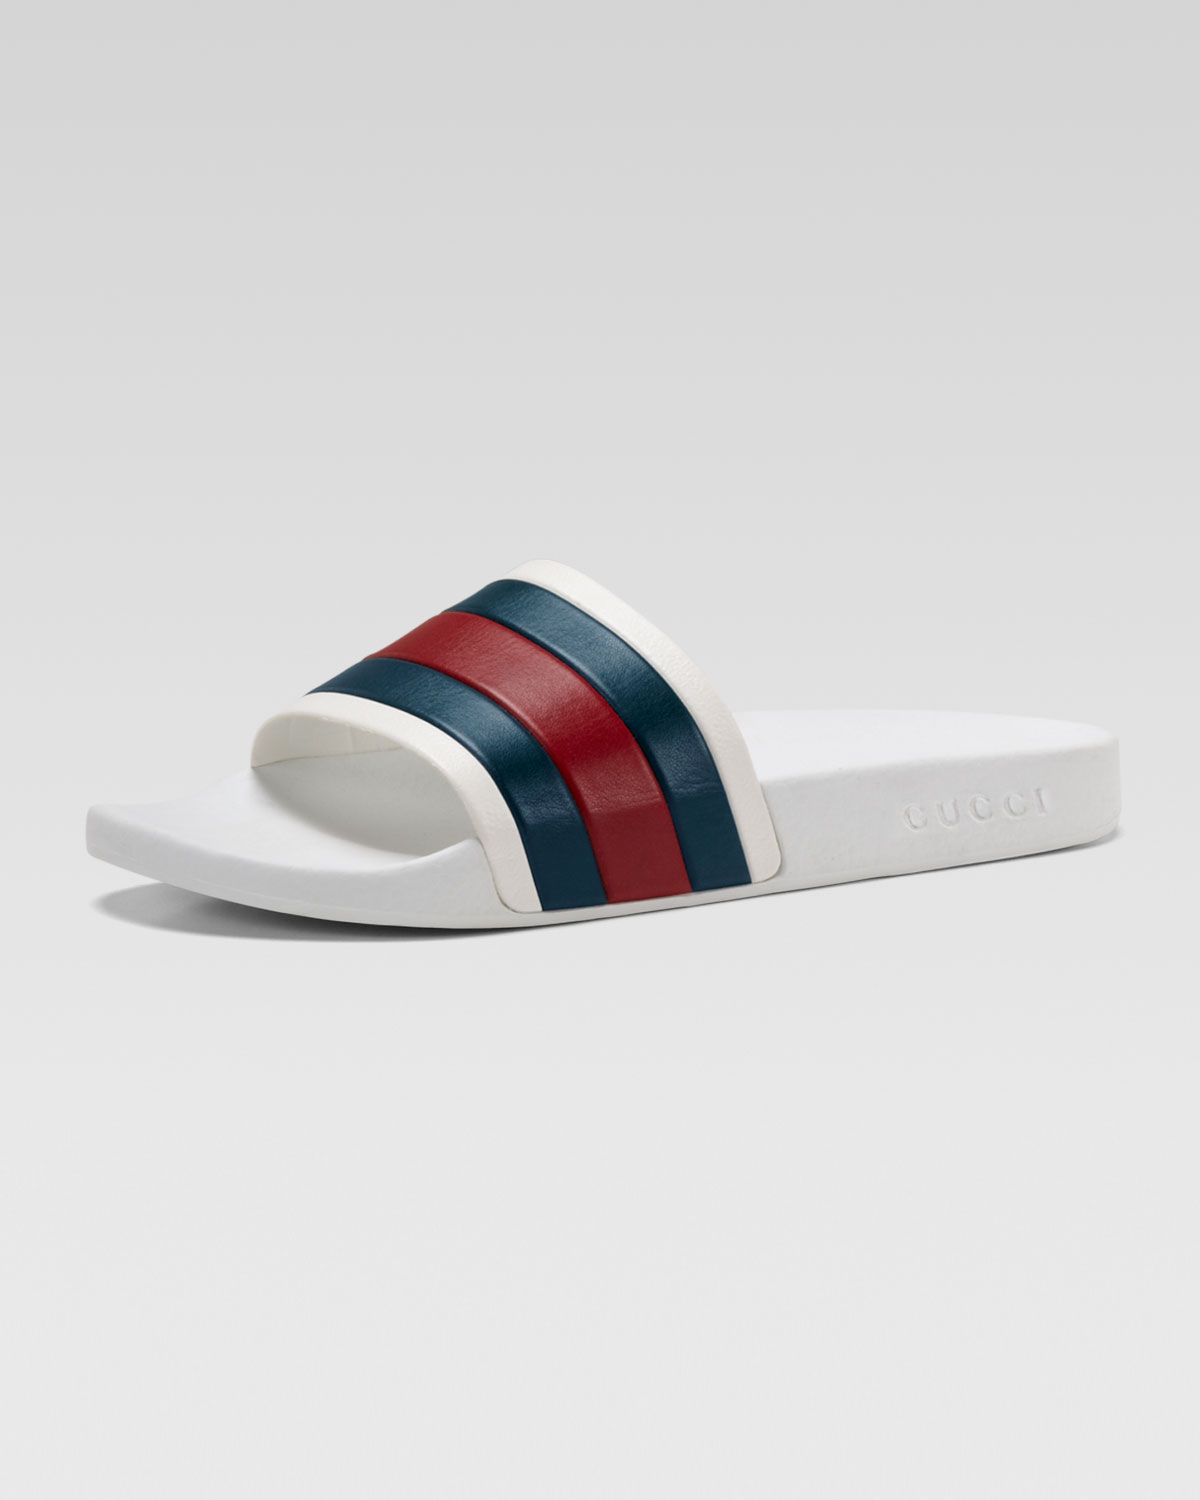 Lyst - Gucci White Rubber Slide Sandal in White for Men